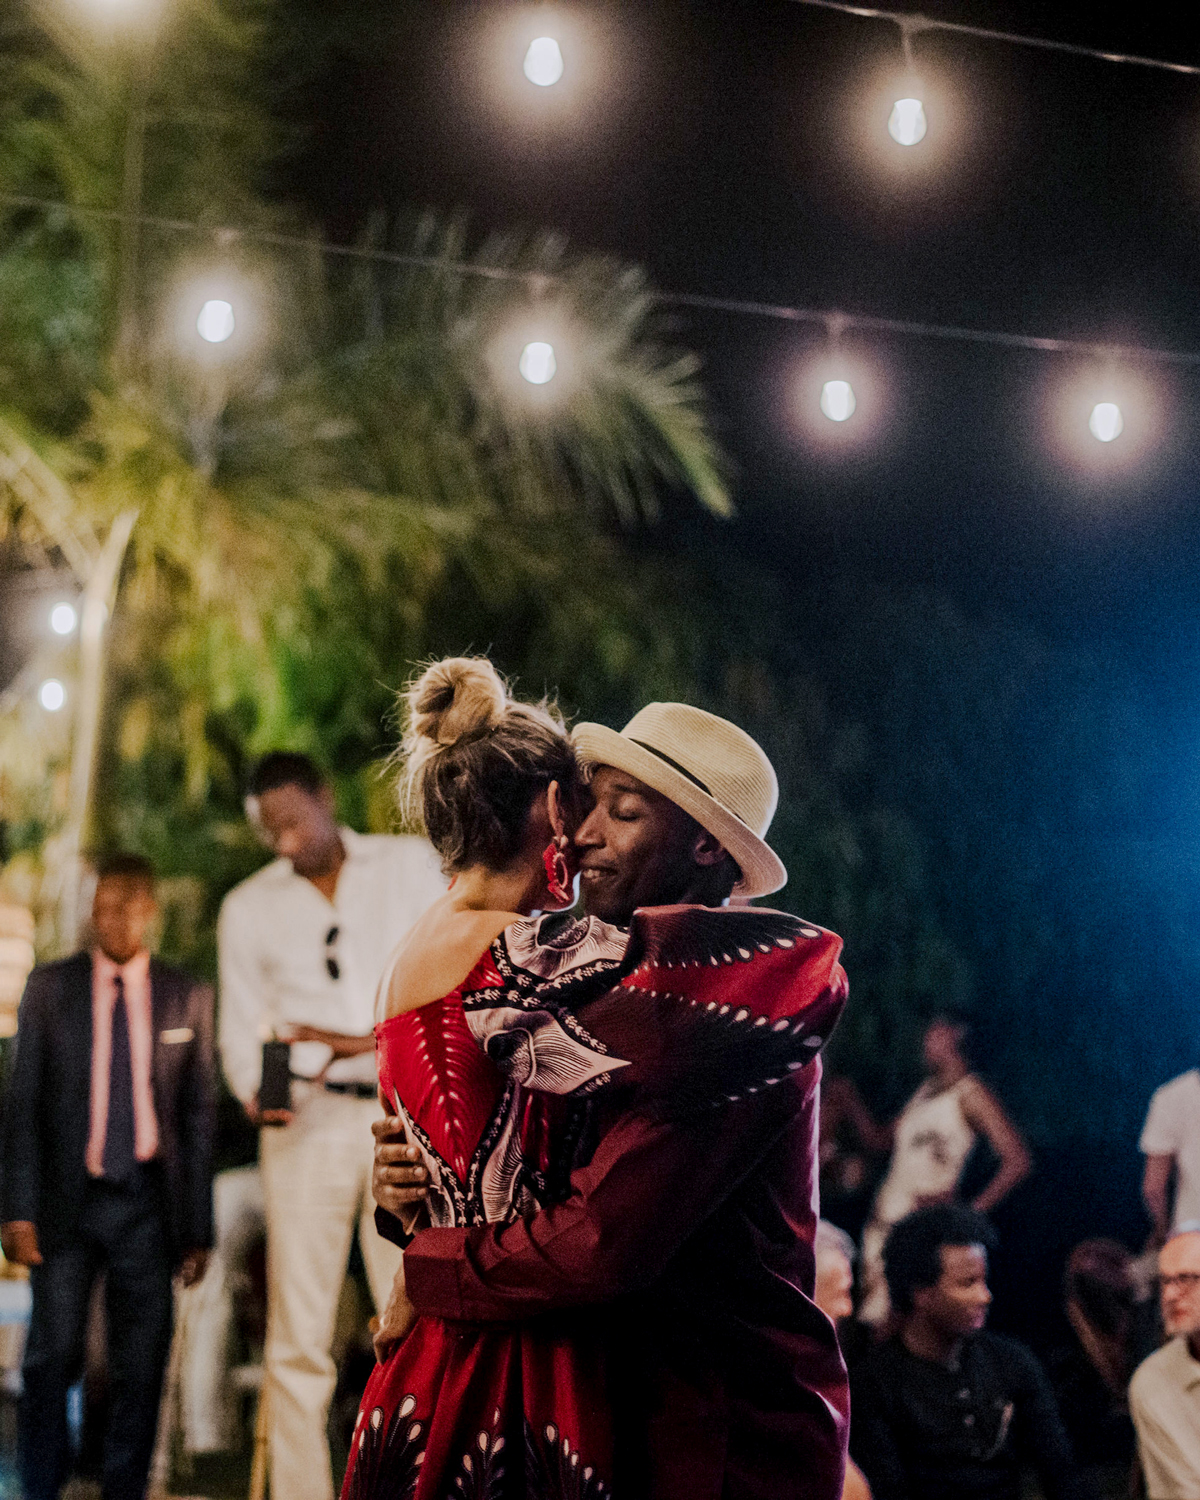 bride and groom wearing matching red outfits during first dance